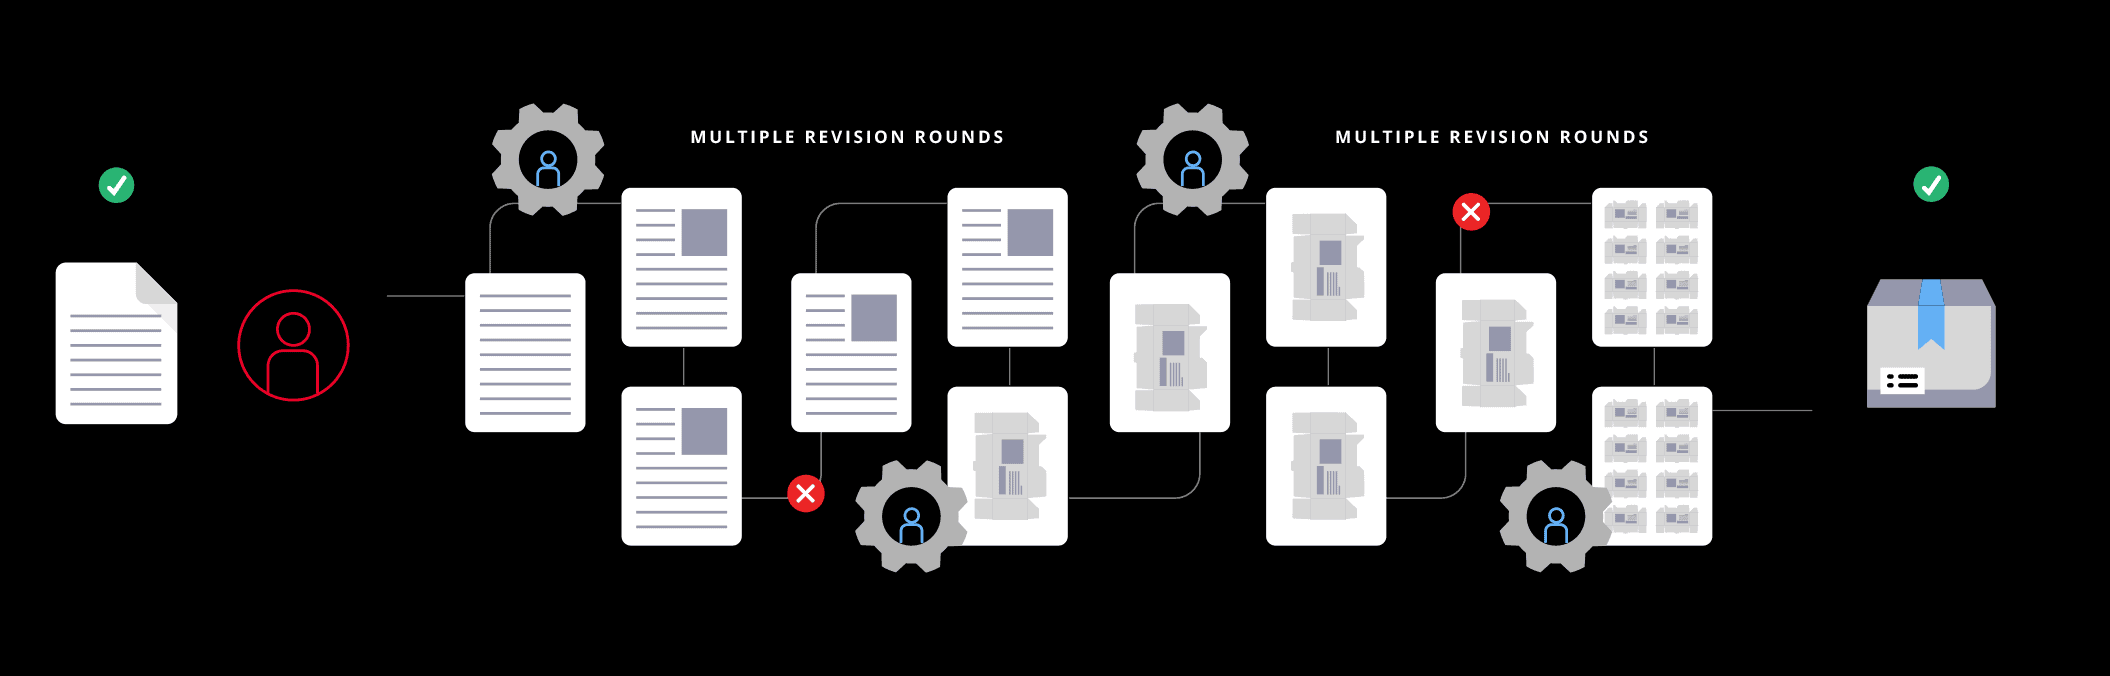 Diagram highlighting multiple documents in workflow with potential for proofreading errors between manuscript and final version-Original Image